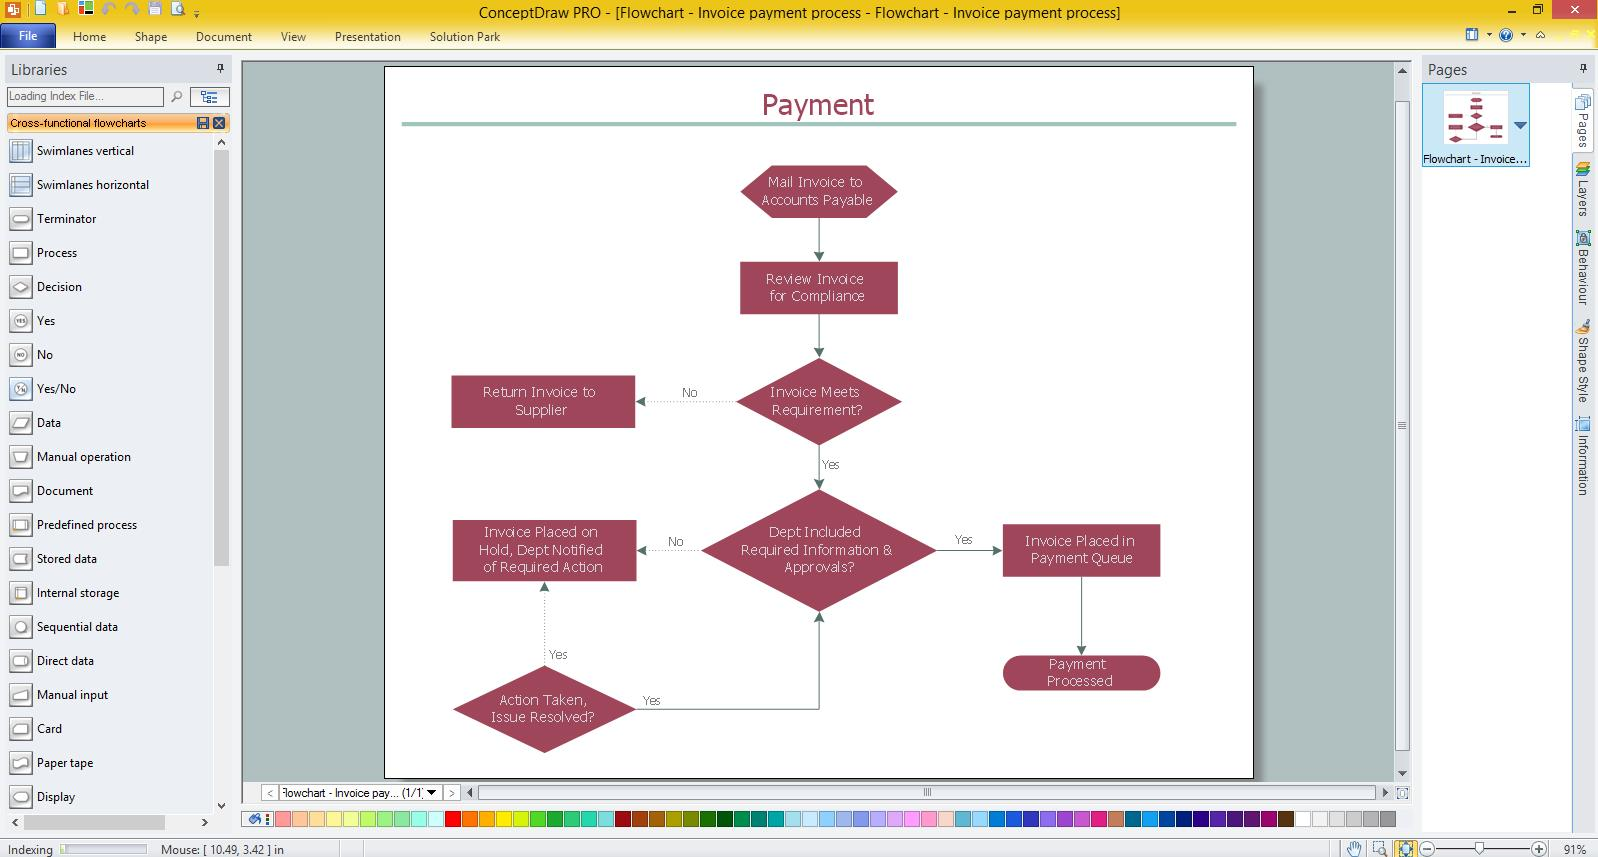 Accounting Flowchart Purchasing Receiving Payable and Payment